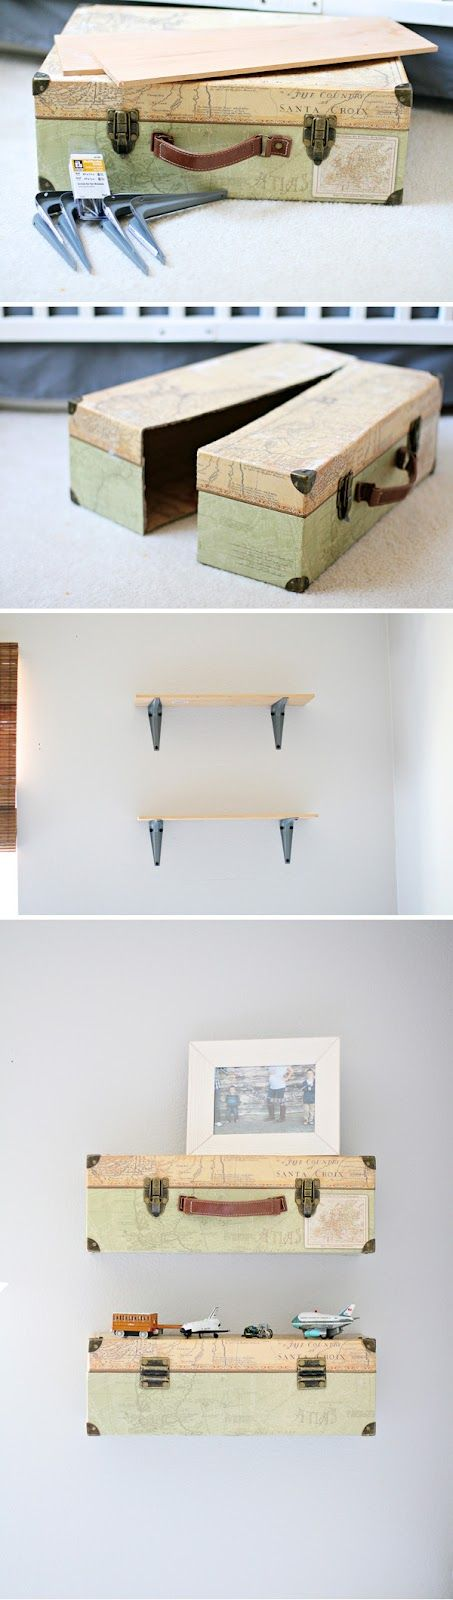 Suitcase Bookshelf | Keepin it Boy INSTRUCTIONS!!!!